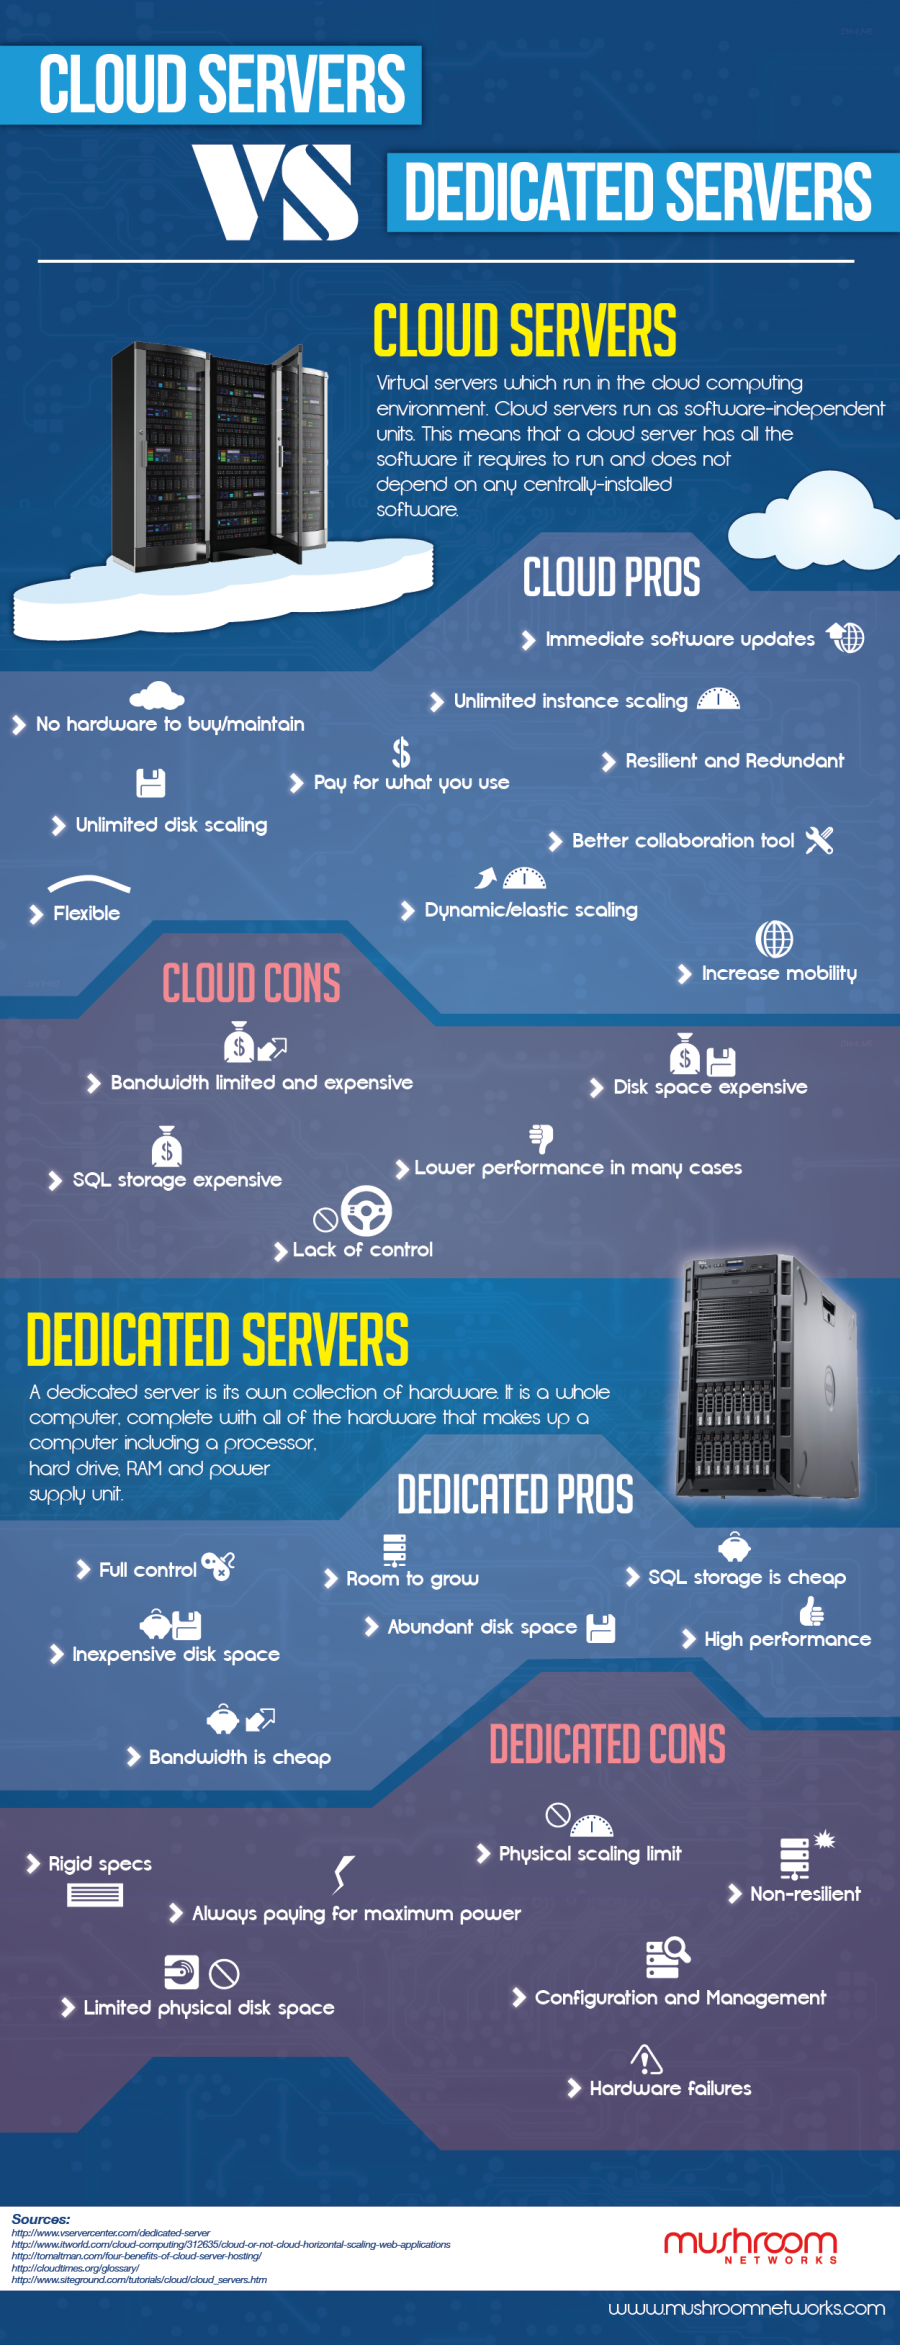 74536? w=900 - The 5 Differences between Cloud and Dedicated Servers